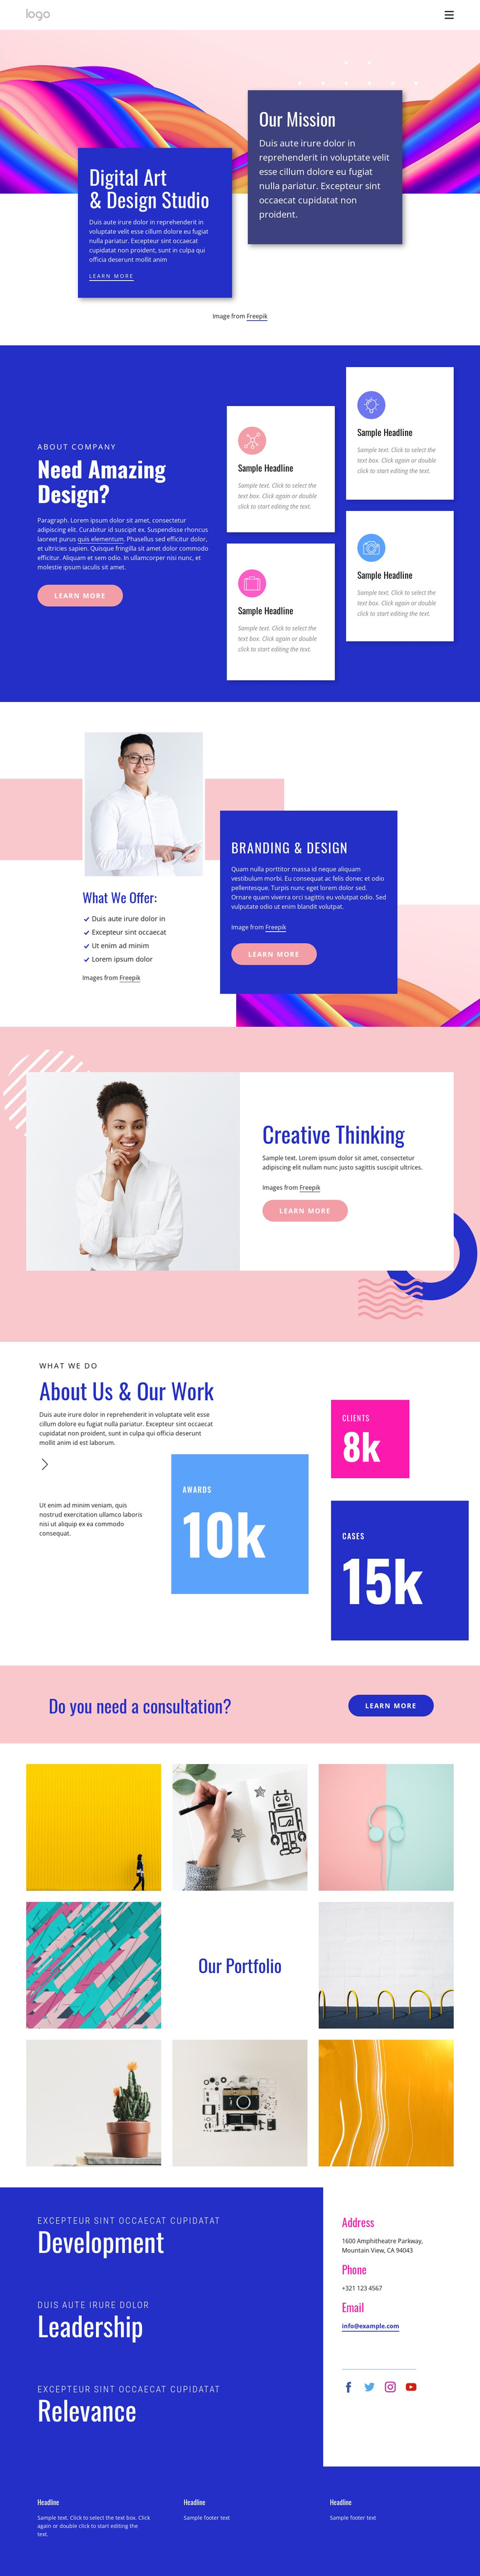 Create content that connects Website Builder Software